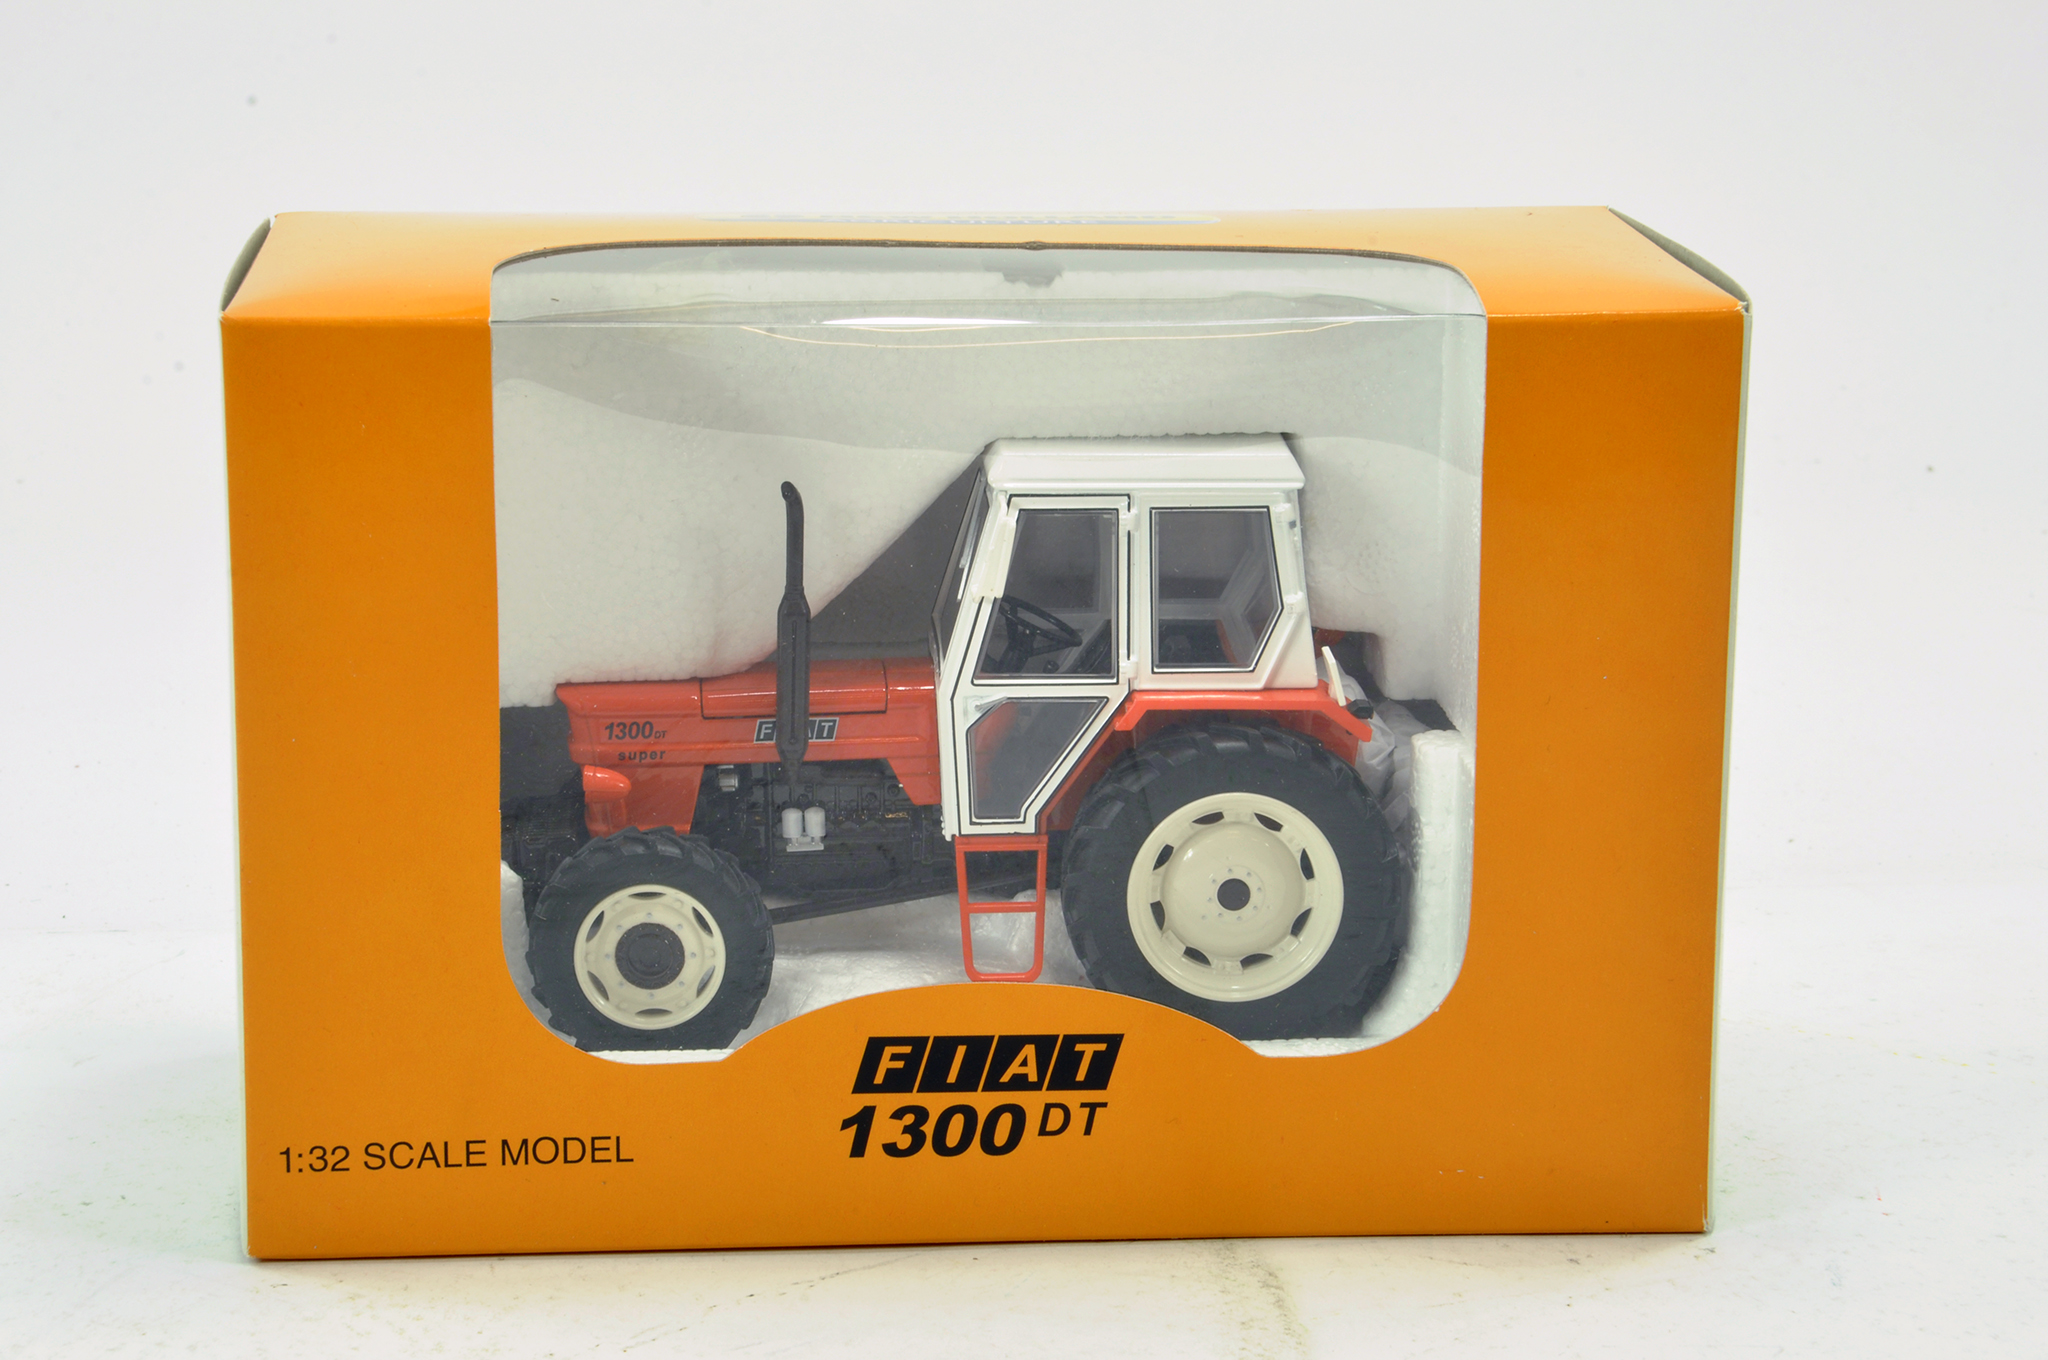 Lot 808 - Replicagri 1/32 Fiat 1300DT 4WD Tractor. Excellent in Box.